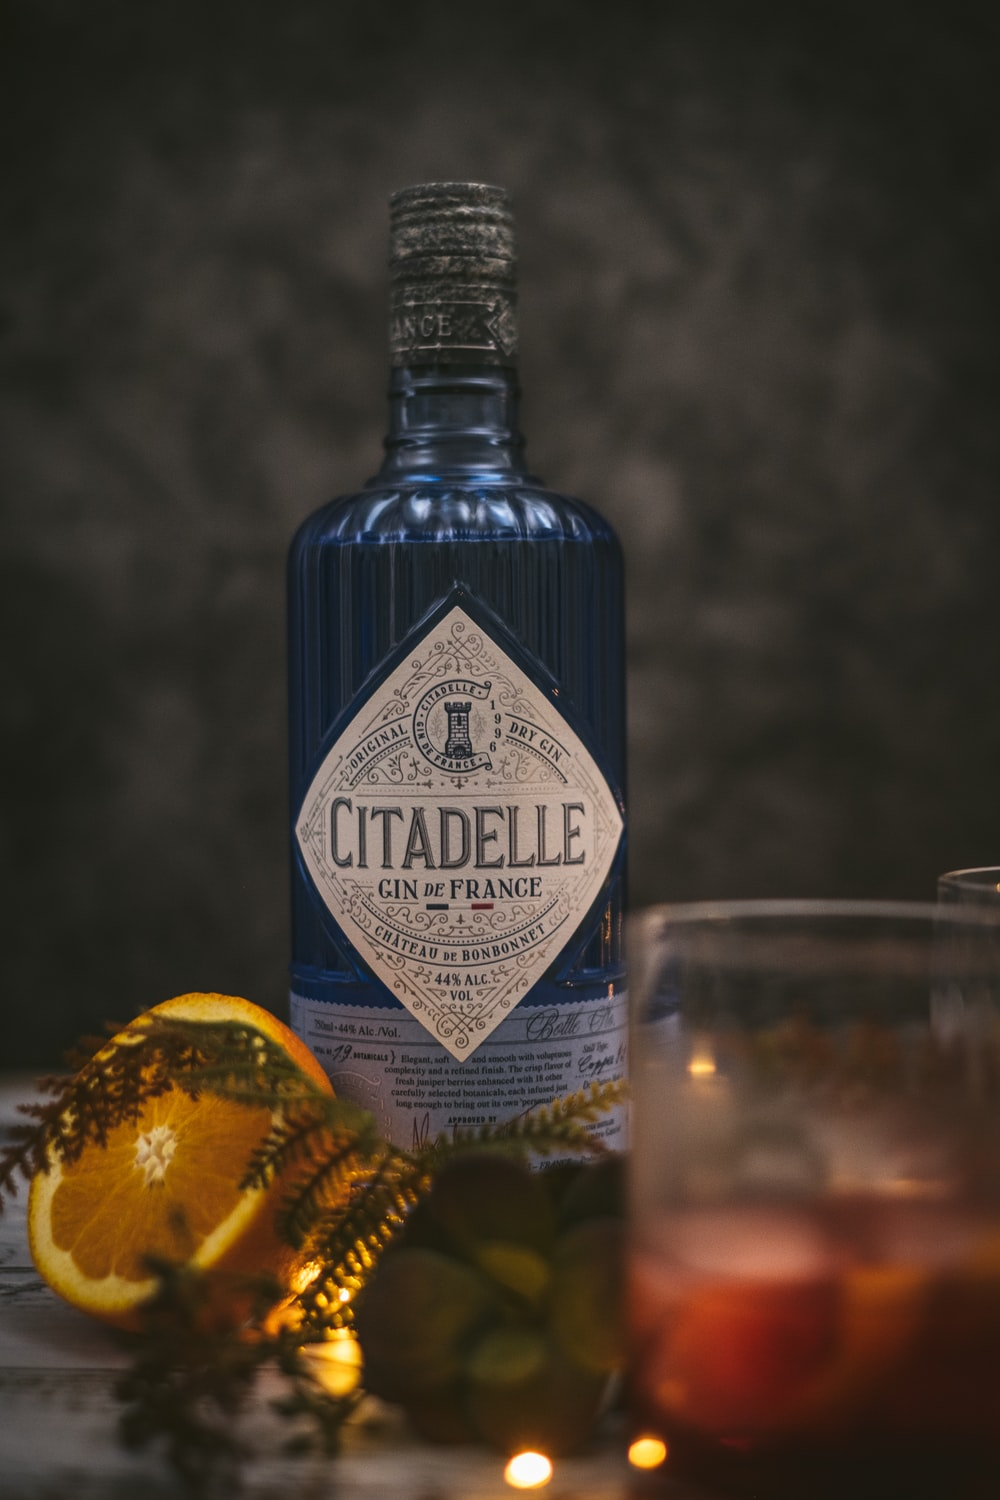 Citadelle glass bottle